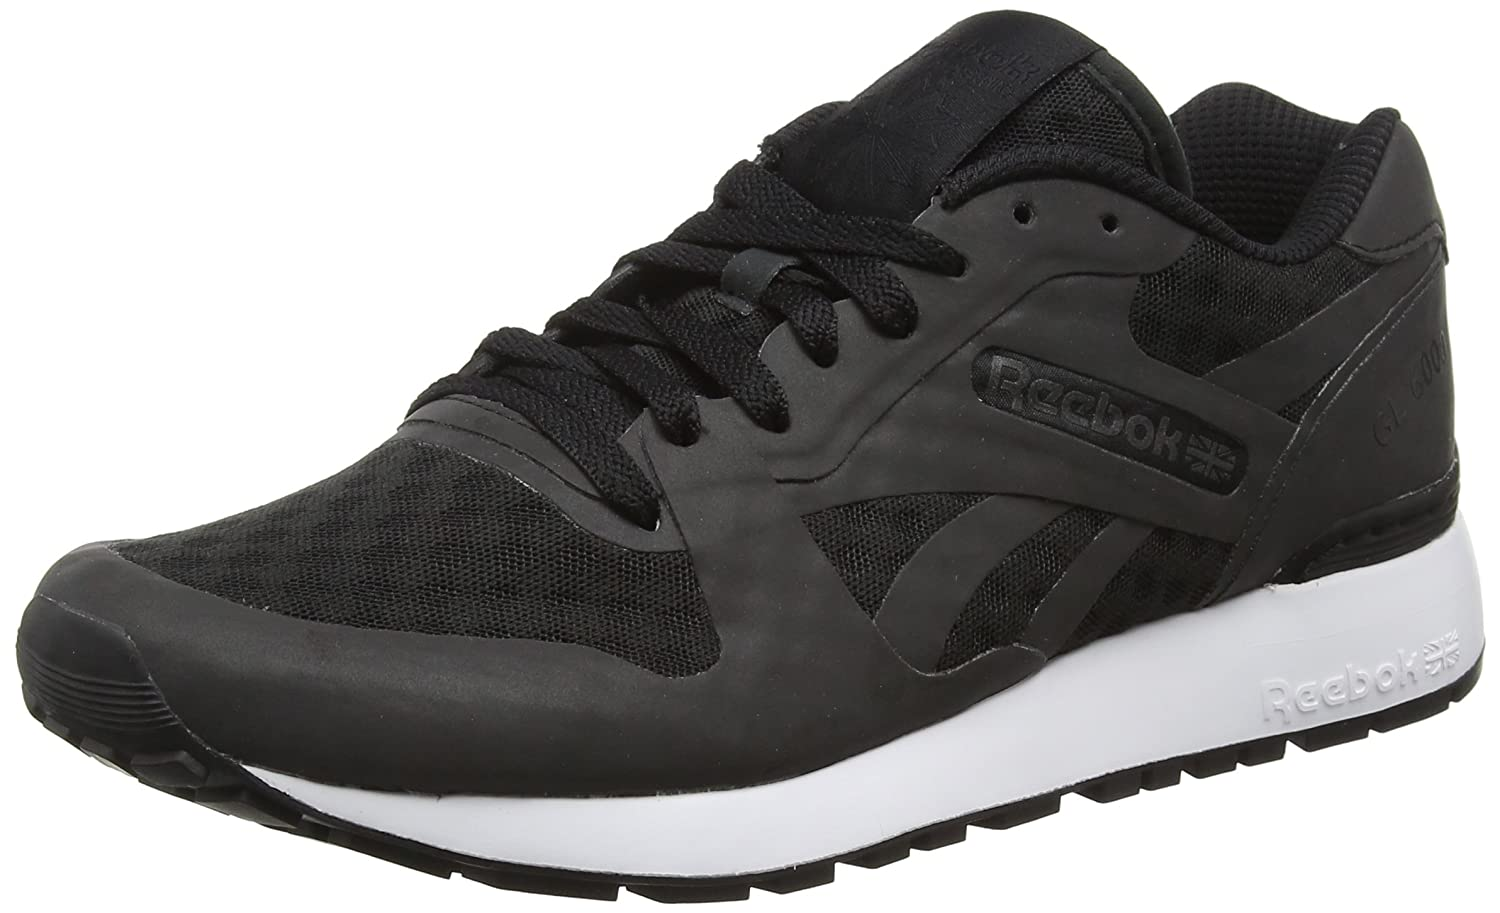 Reebok Herren Gl 6000 Hidden Messaging Tech Pack Sneaker, Schwarz  45 EU|Schwarz (Black/White)